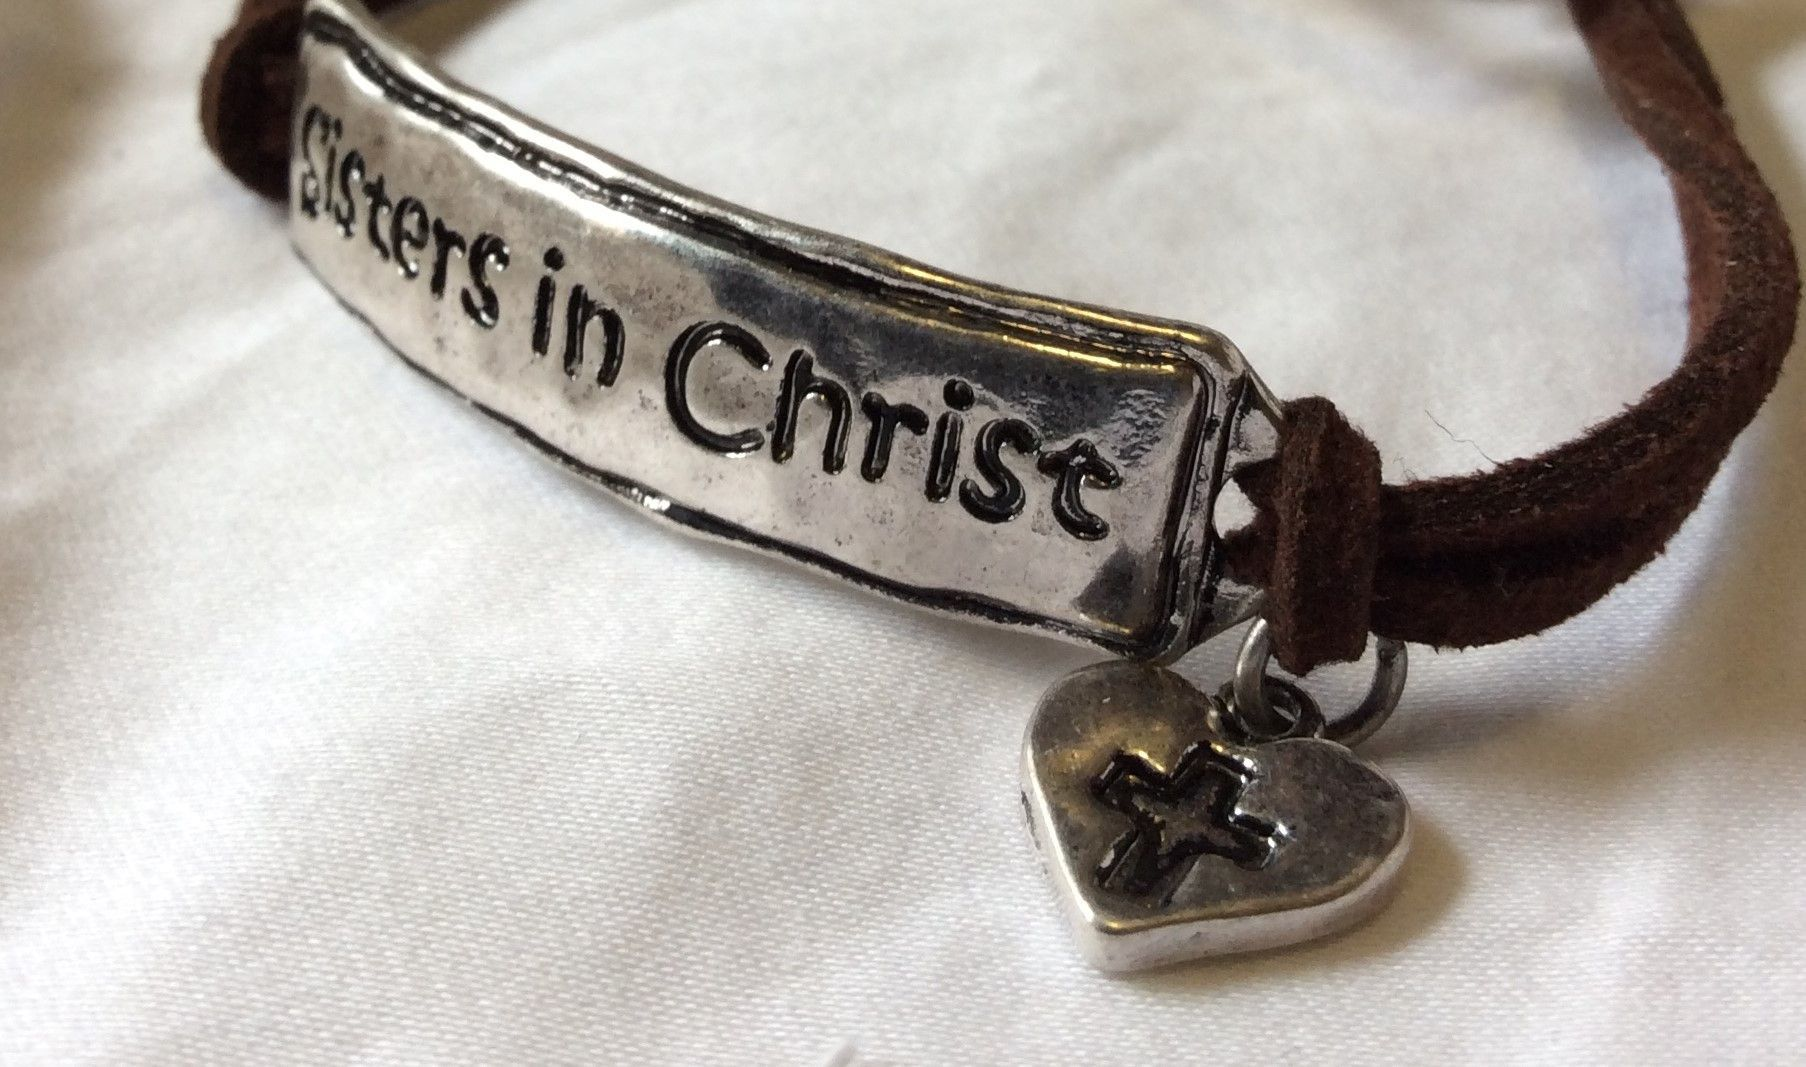 Dainty Suede Style 9 Bracelet Featuring Sisters In Christ Focal Lead Compliant